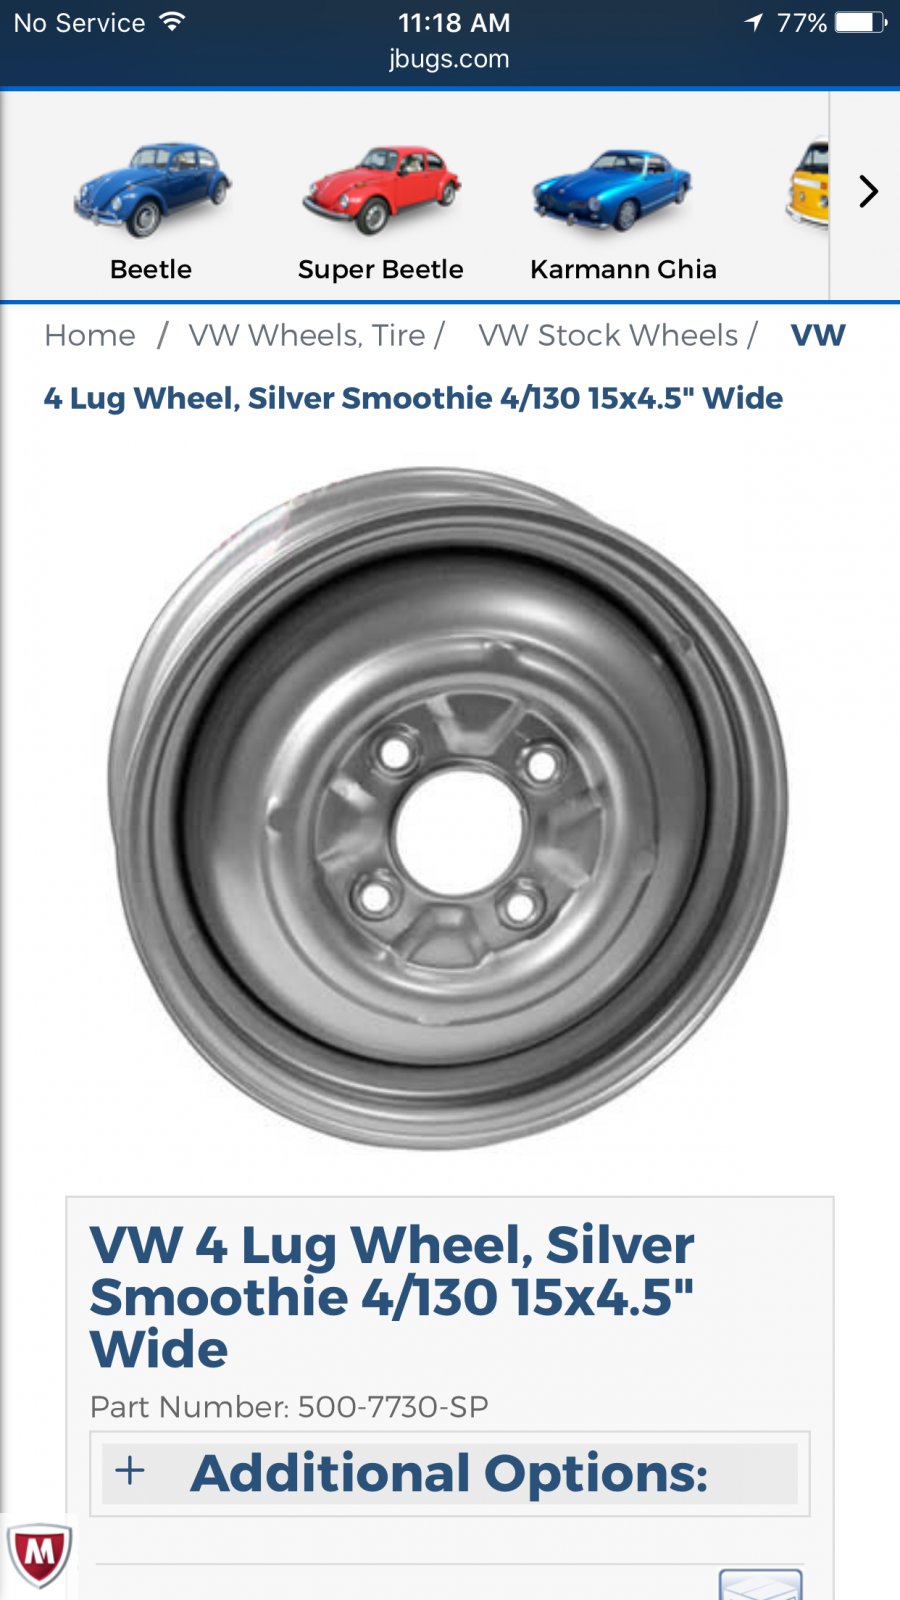 Where can I get 4 lug vw smoothies that fit baby moon hub caps?